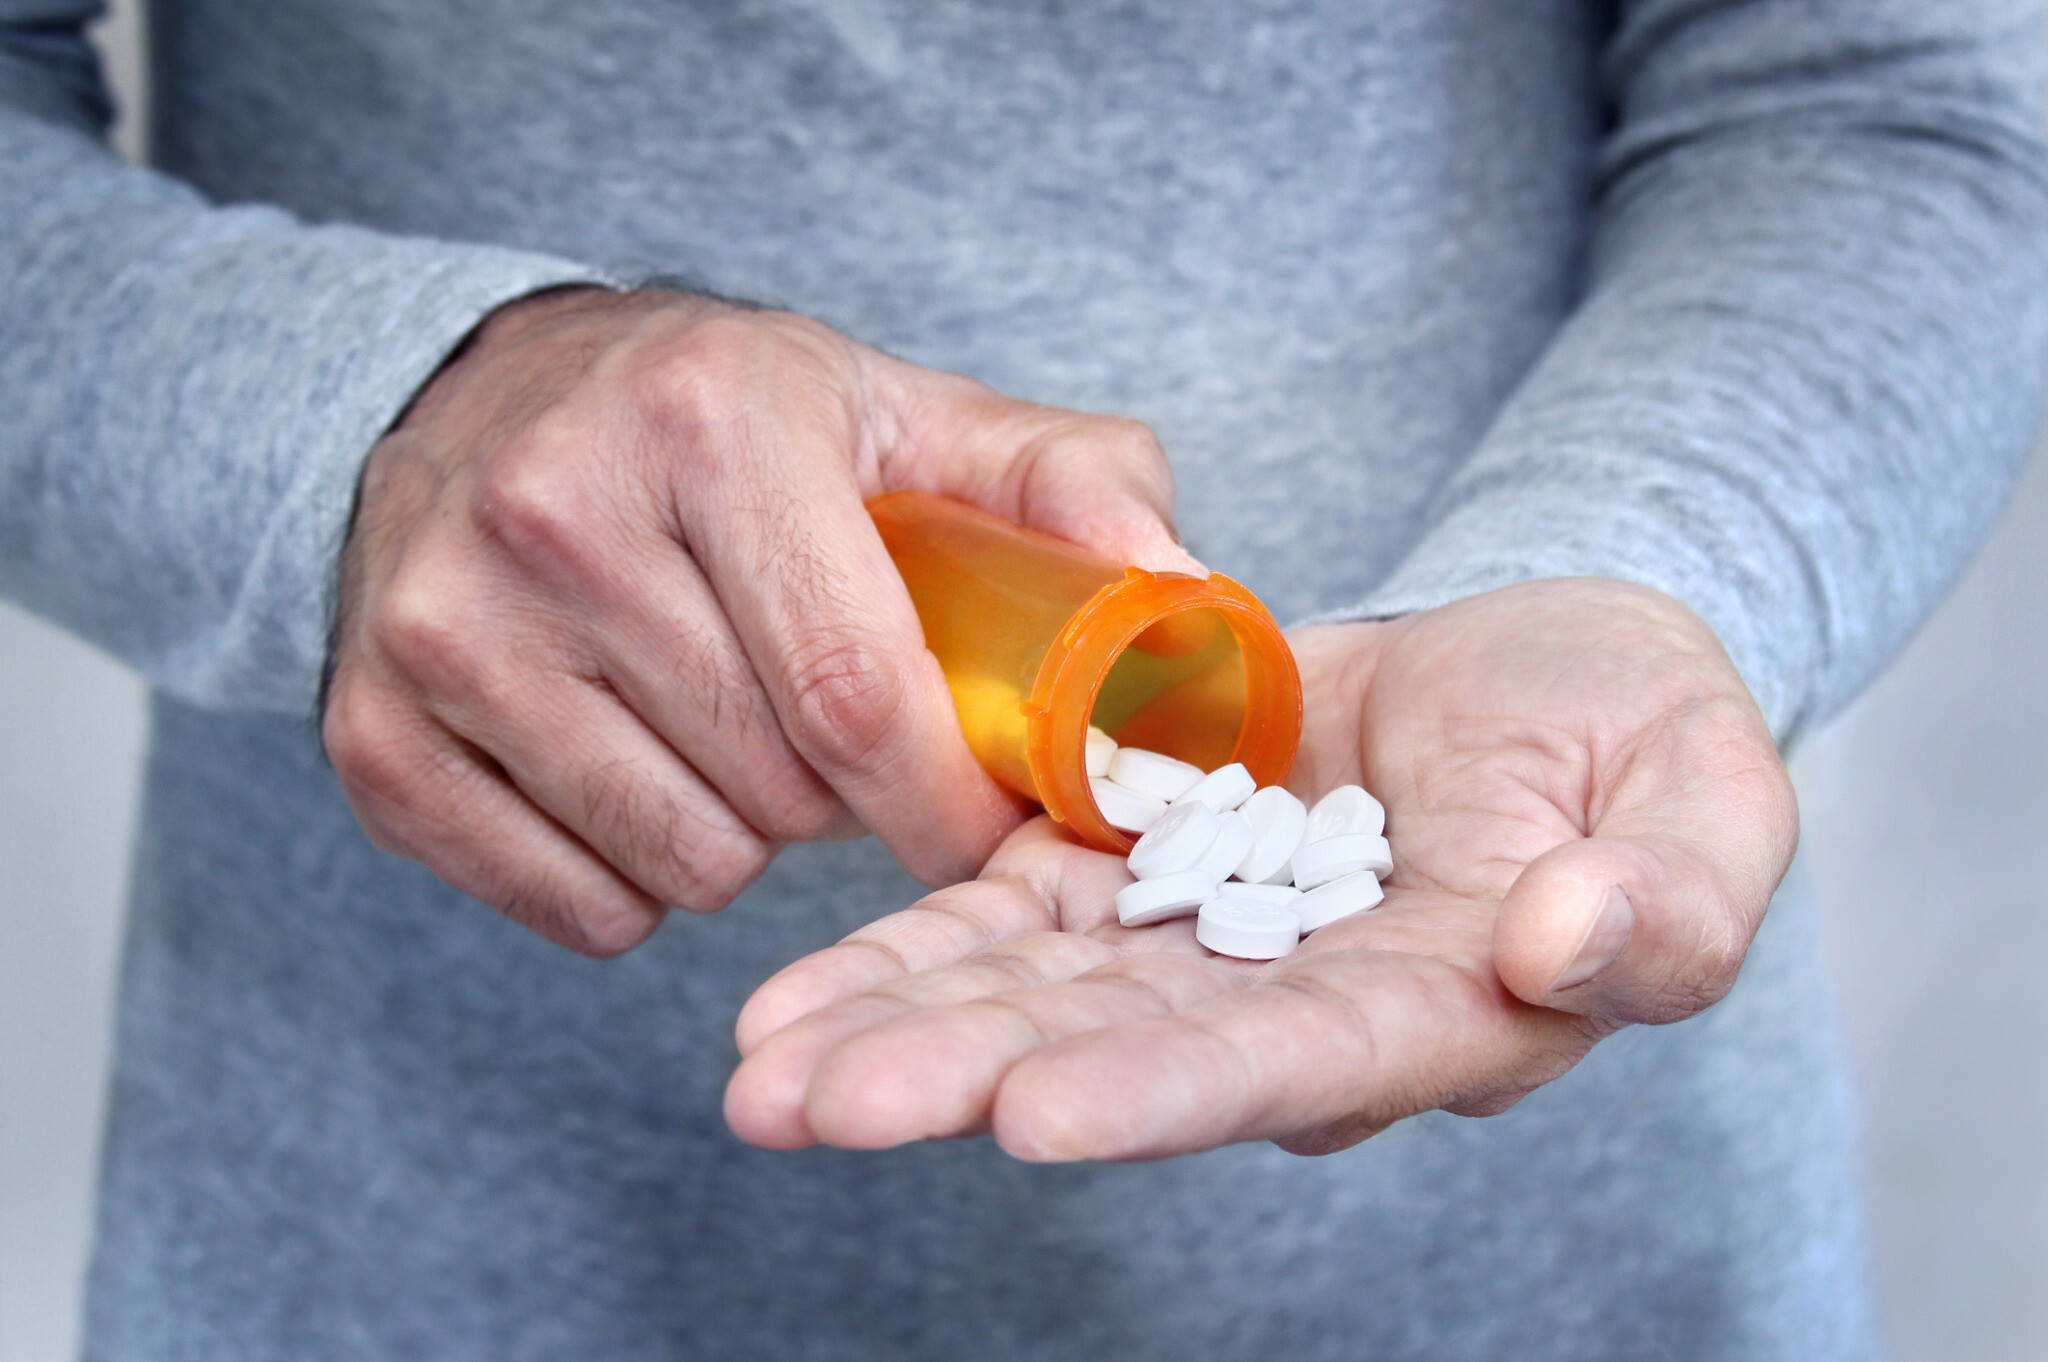 Israeli Pharma Claims To Be Just Weeks Away From Introducing Pill To Cure COVID-19